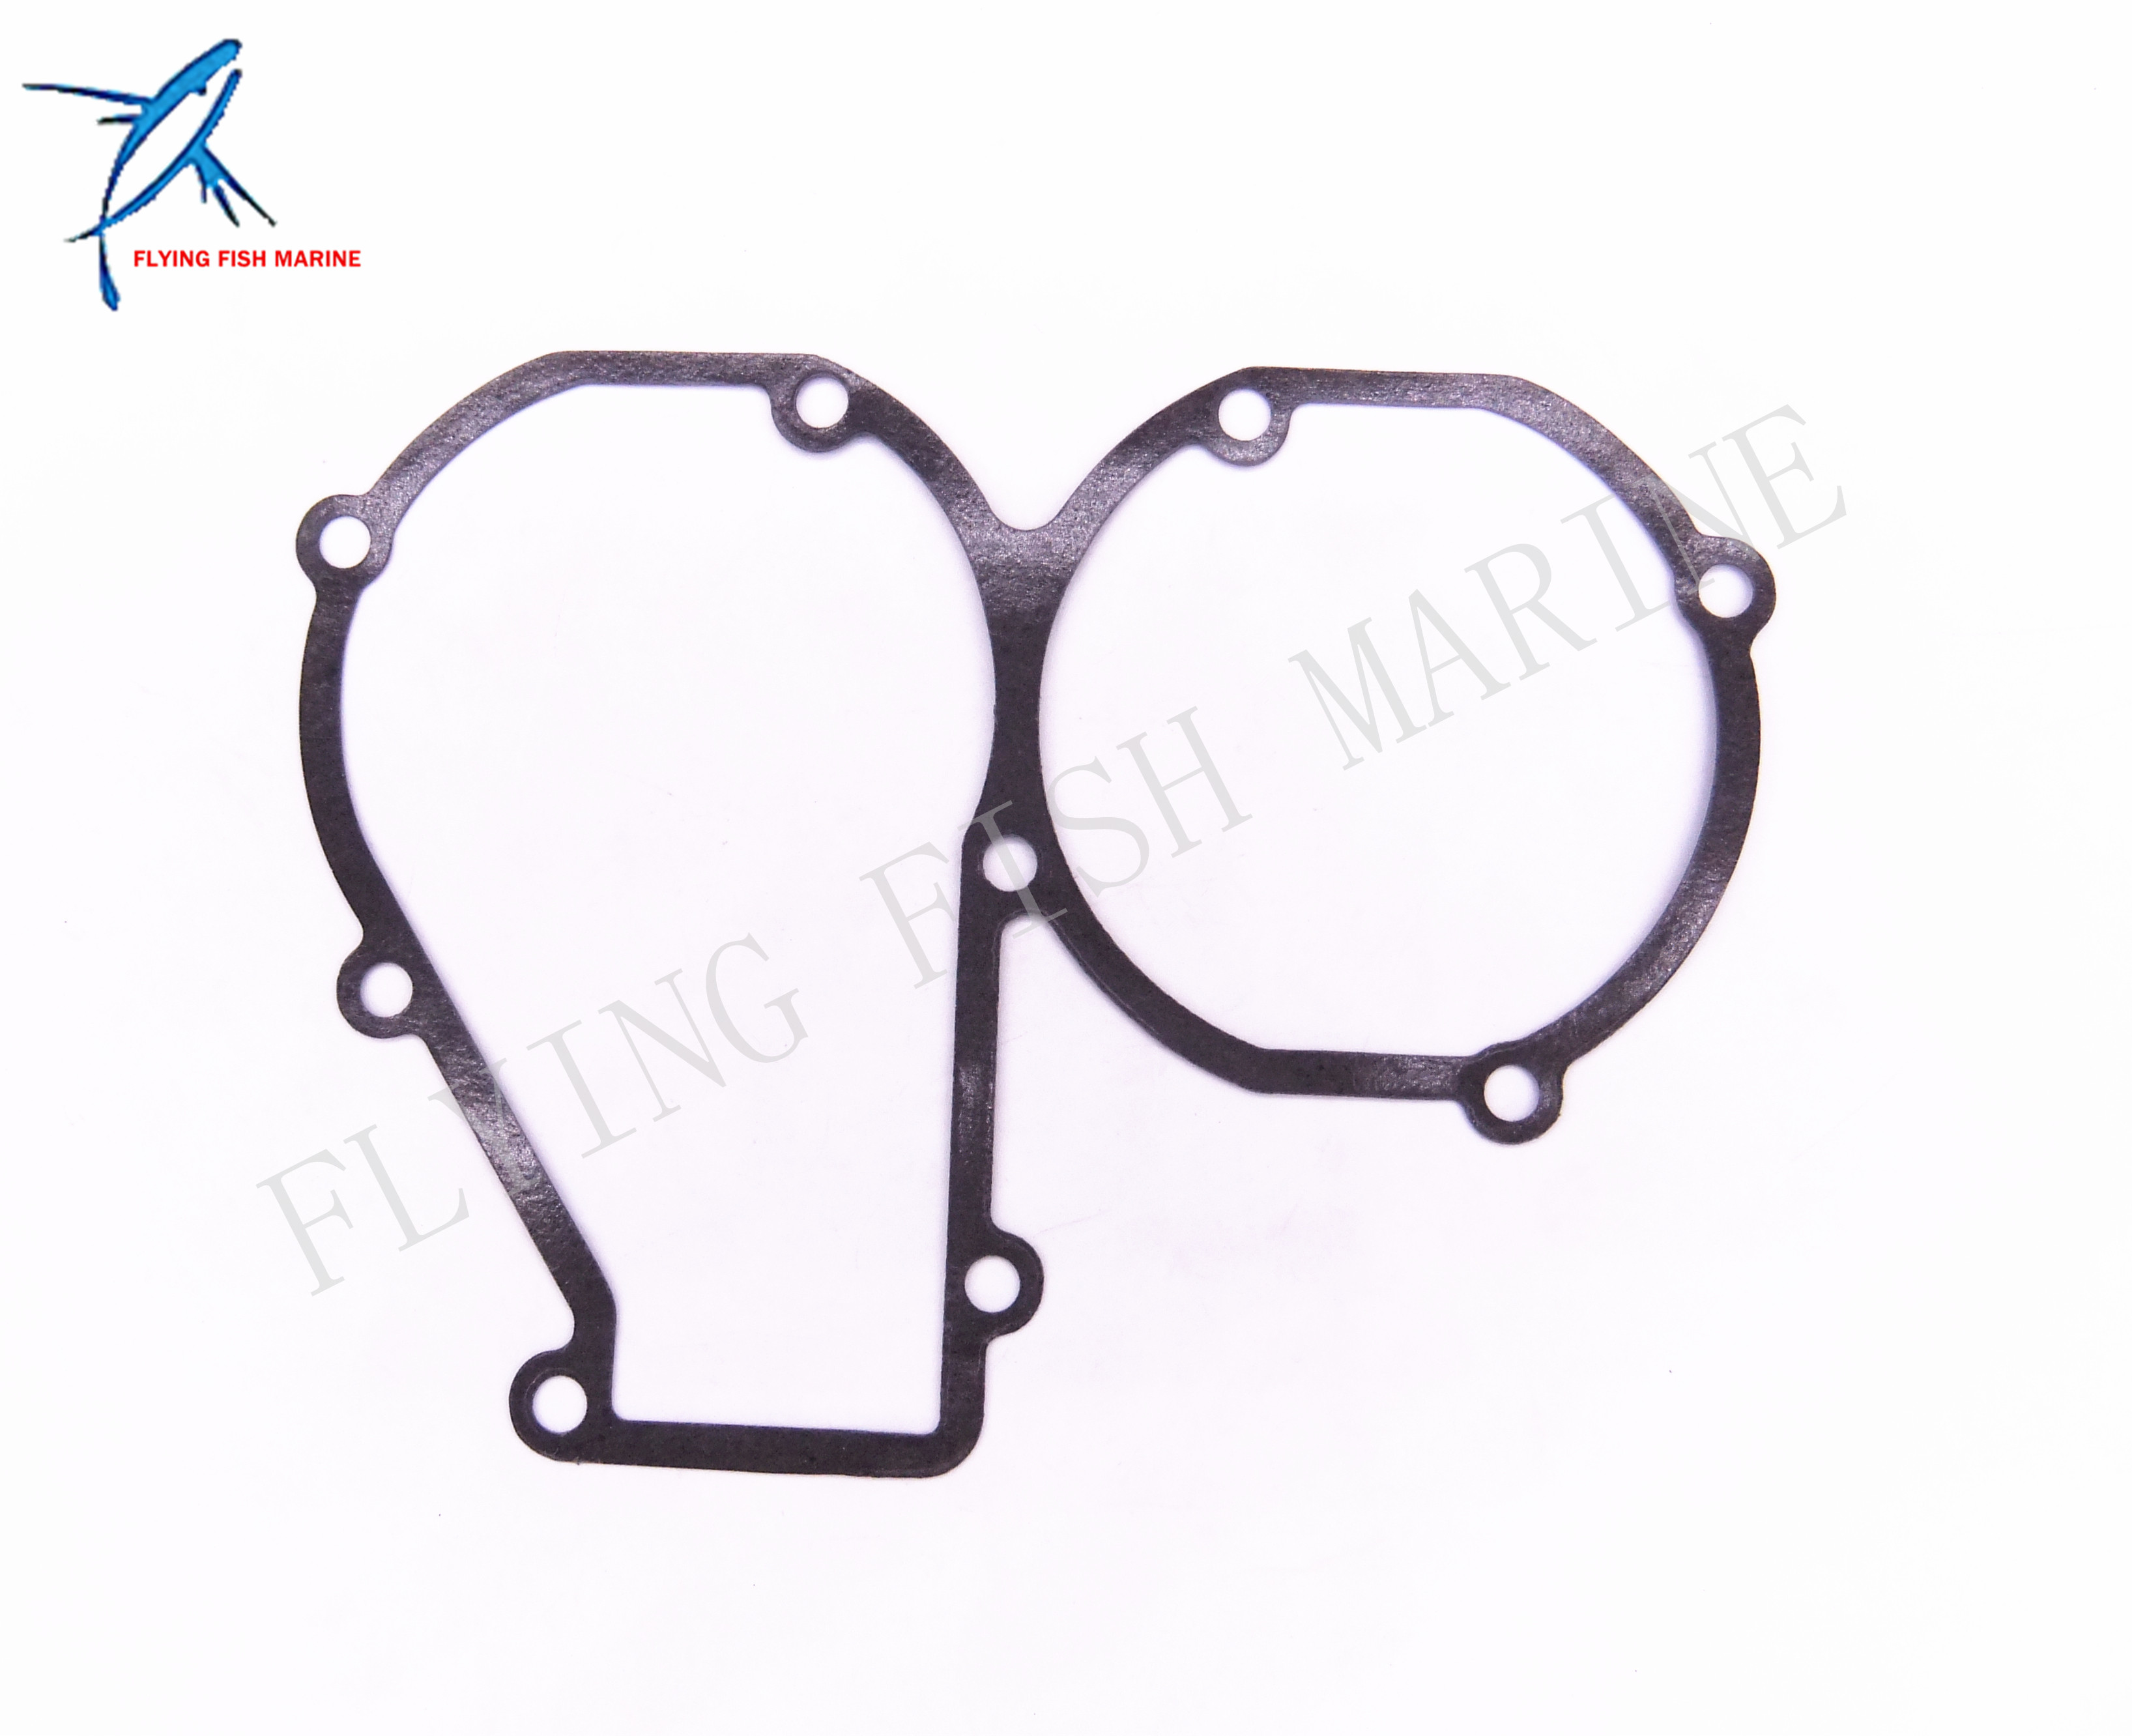 Outboard Engine T20-06000012 Intake Valve Seat Gasket for Parsun 2-Stroke T20 T25 T30A Boat Motor Free Shipping